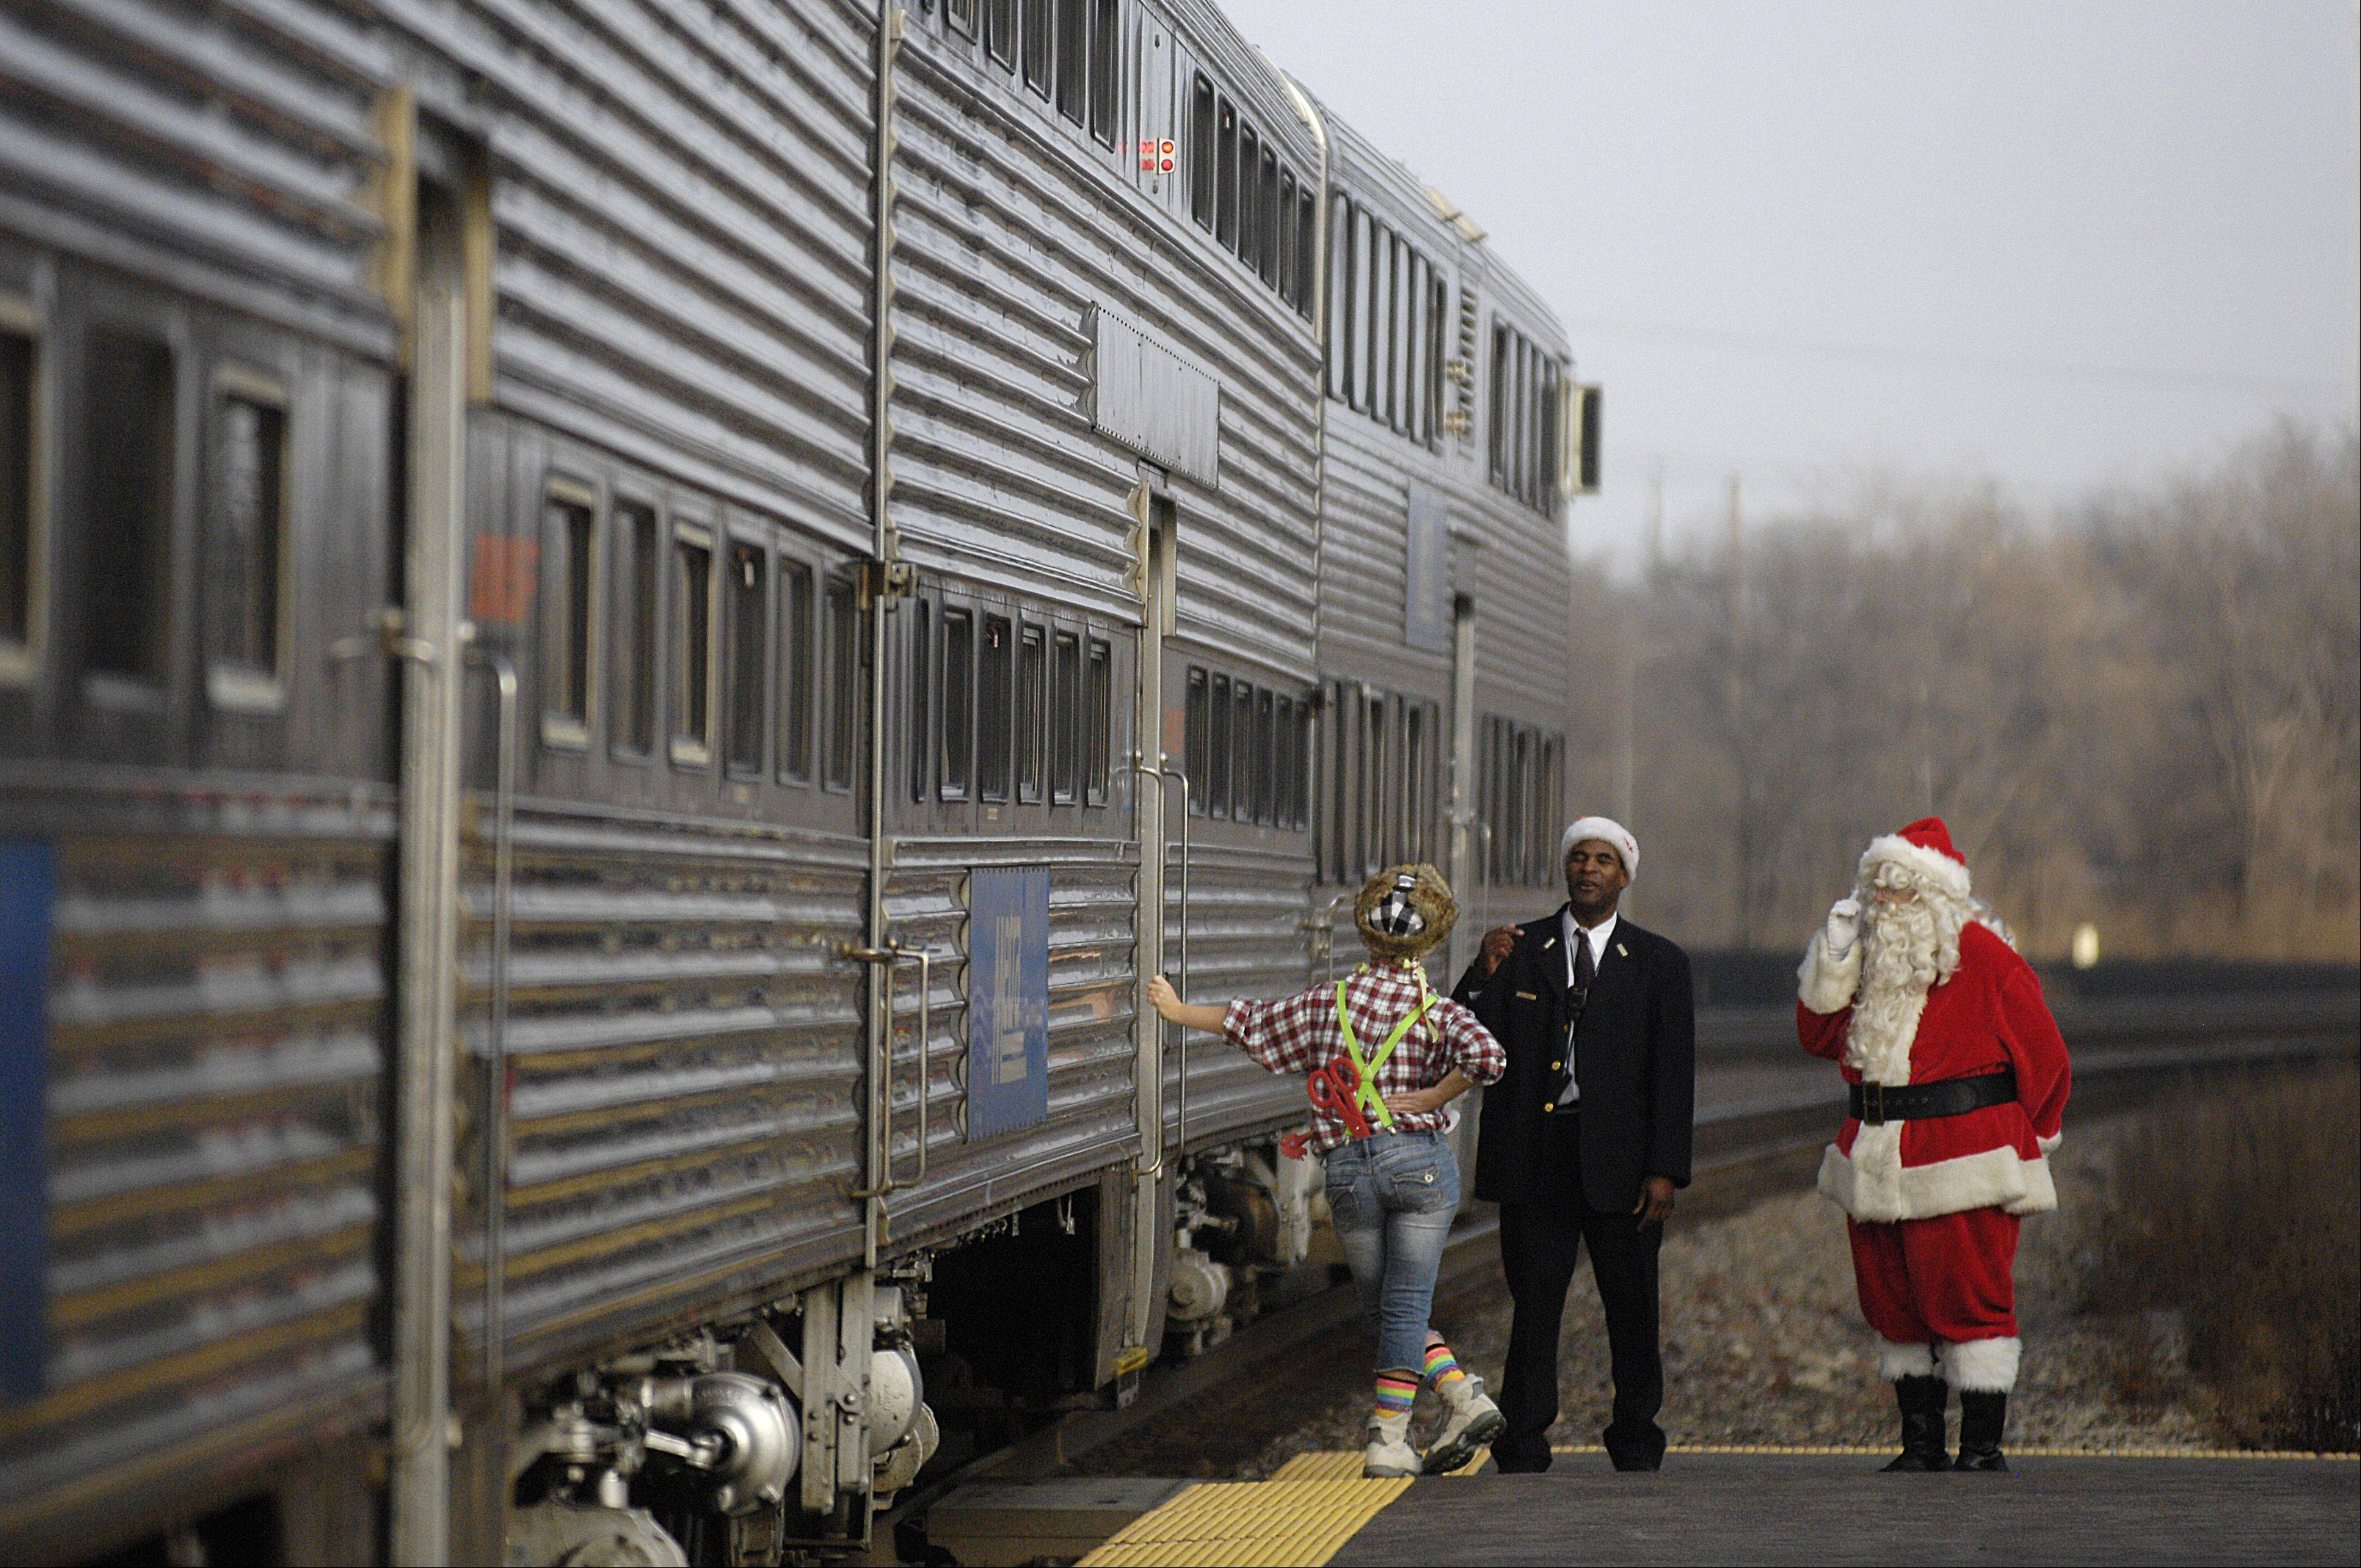 Santa waits on the Lisle Metra platform Sunday before boarding the Polar Express train heading to the �North Pole�. The �Polar Express� was not directly connected to Lisle�s Once Upon a Christmas celebration at Lisle Station Park, but the timing of the train and festival made it possible for visitors to participate in both events.